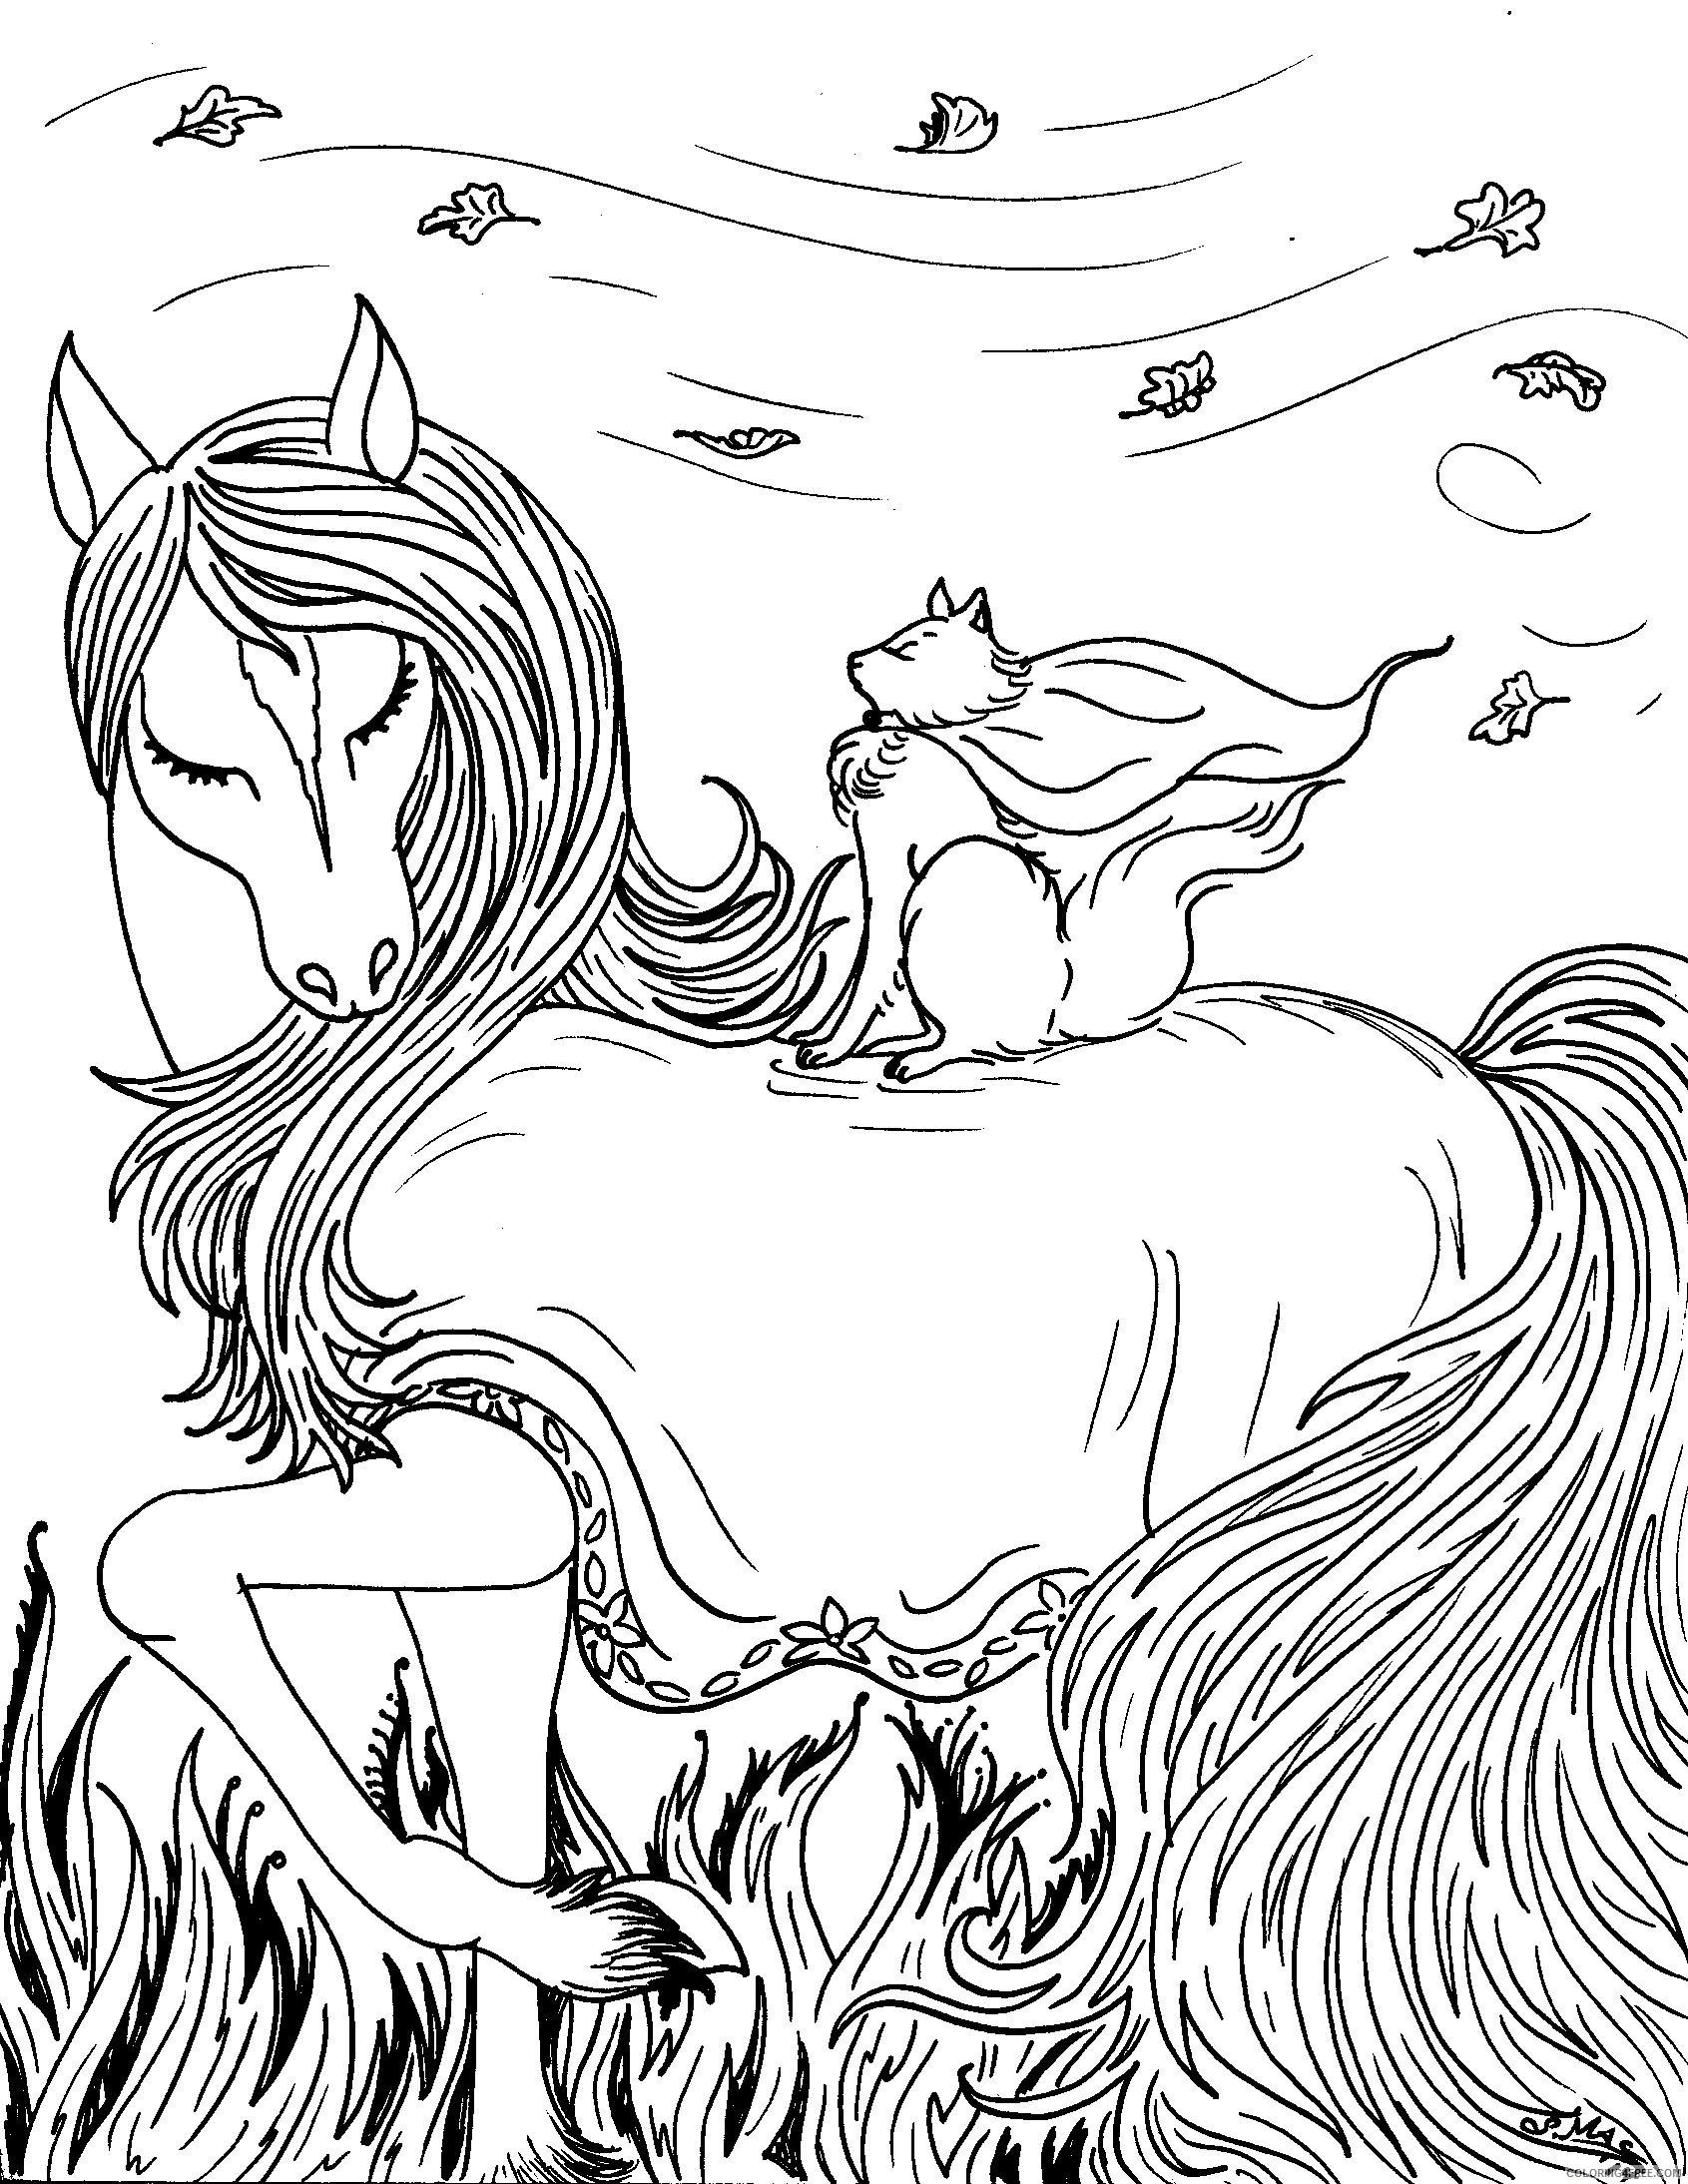 fantasy coloring pages horse and cat Coloring4free